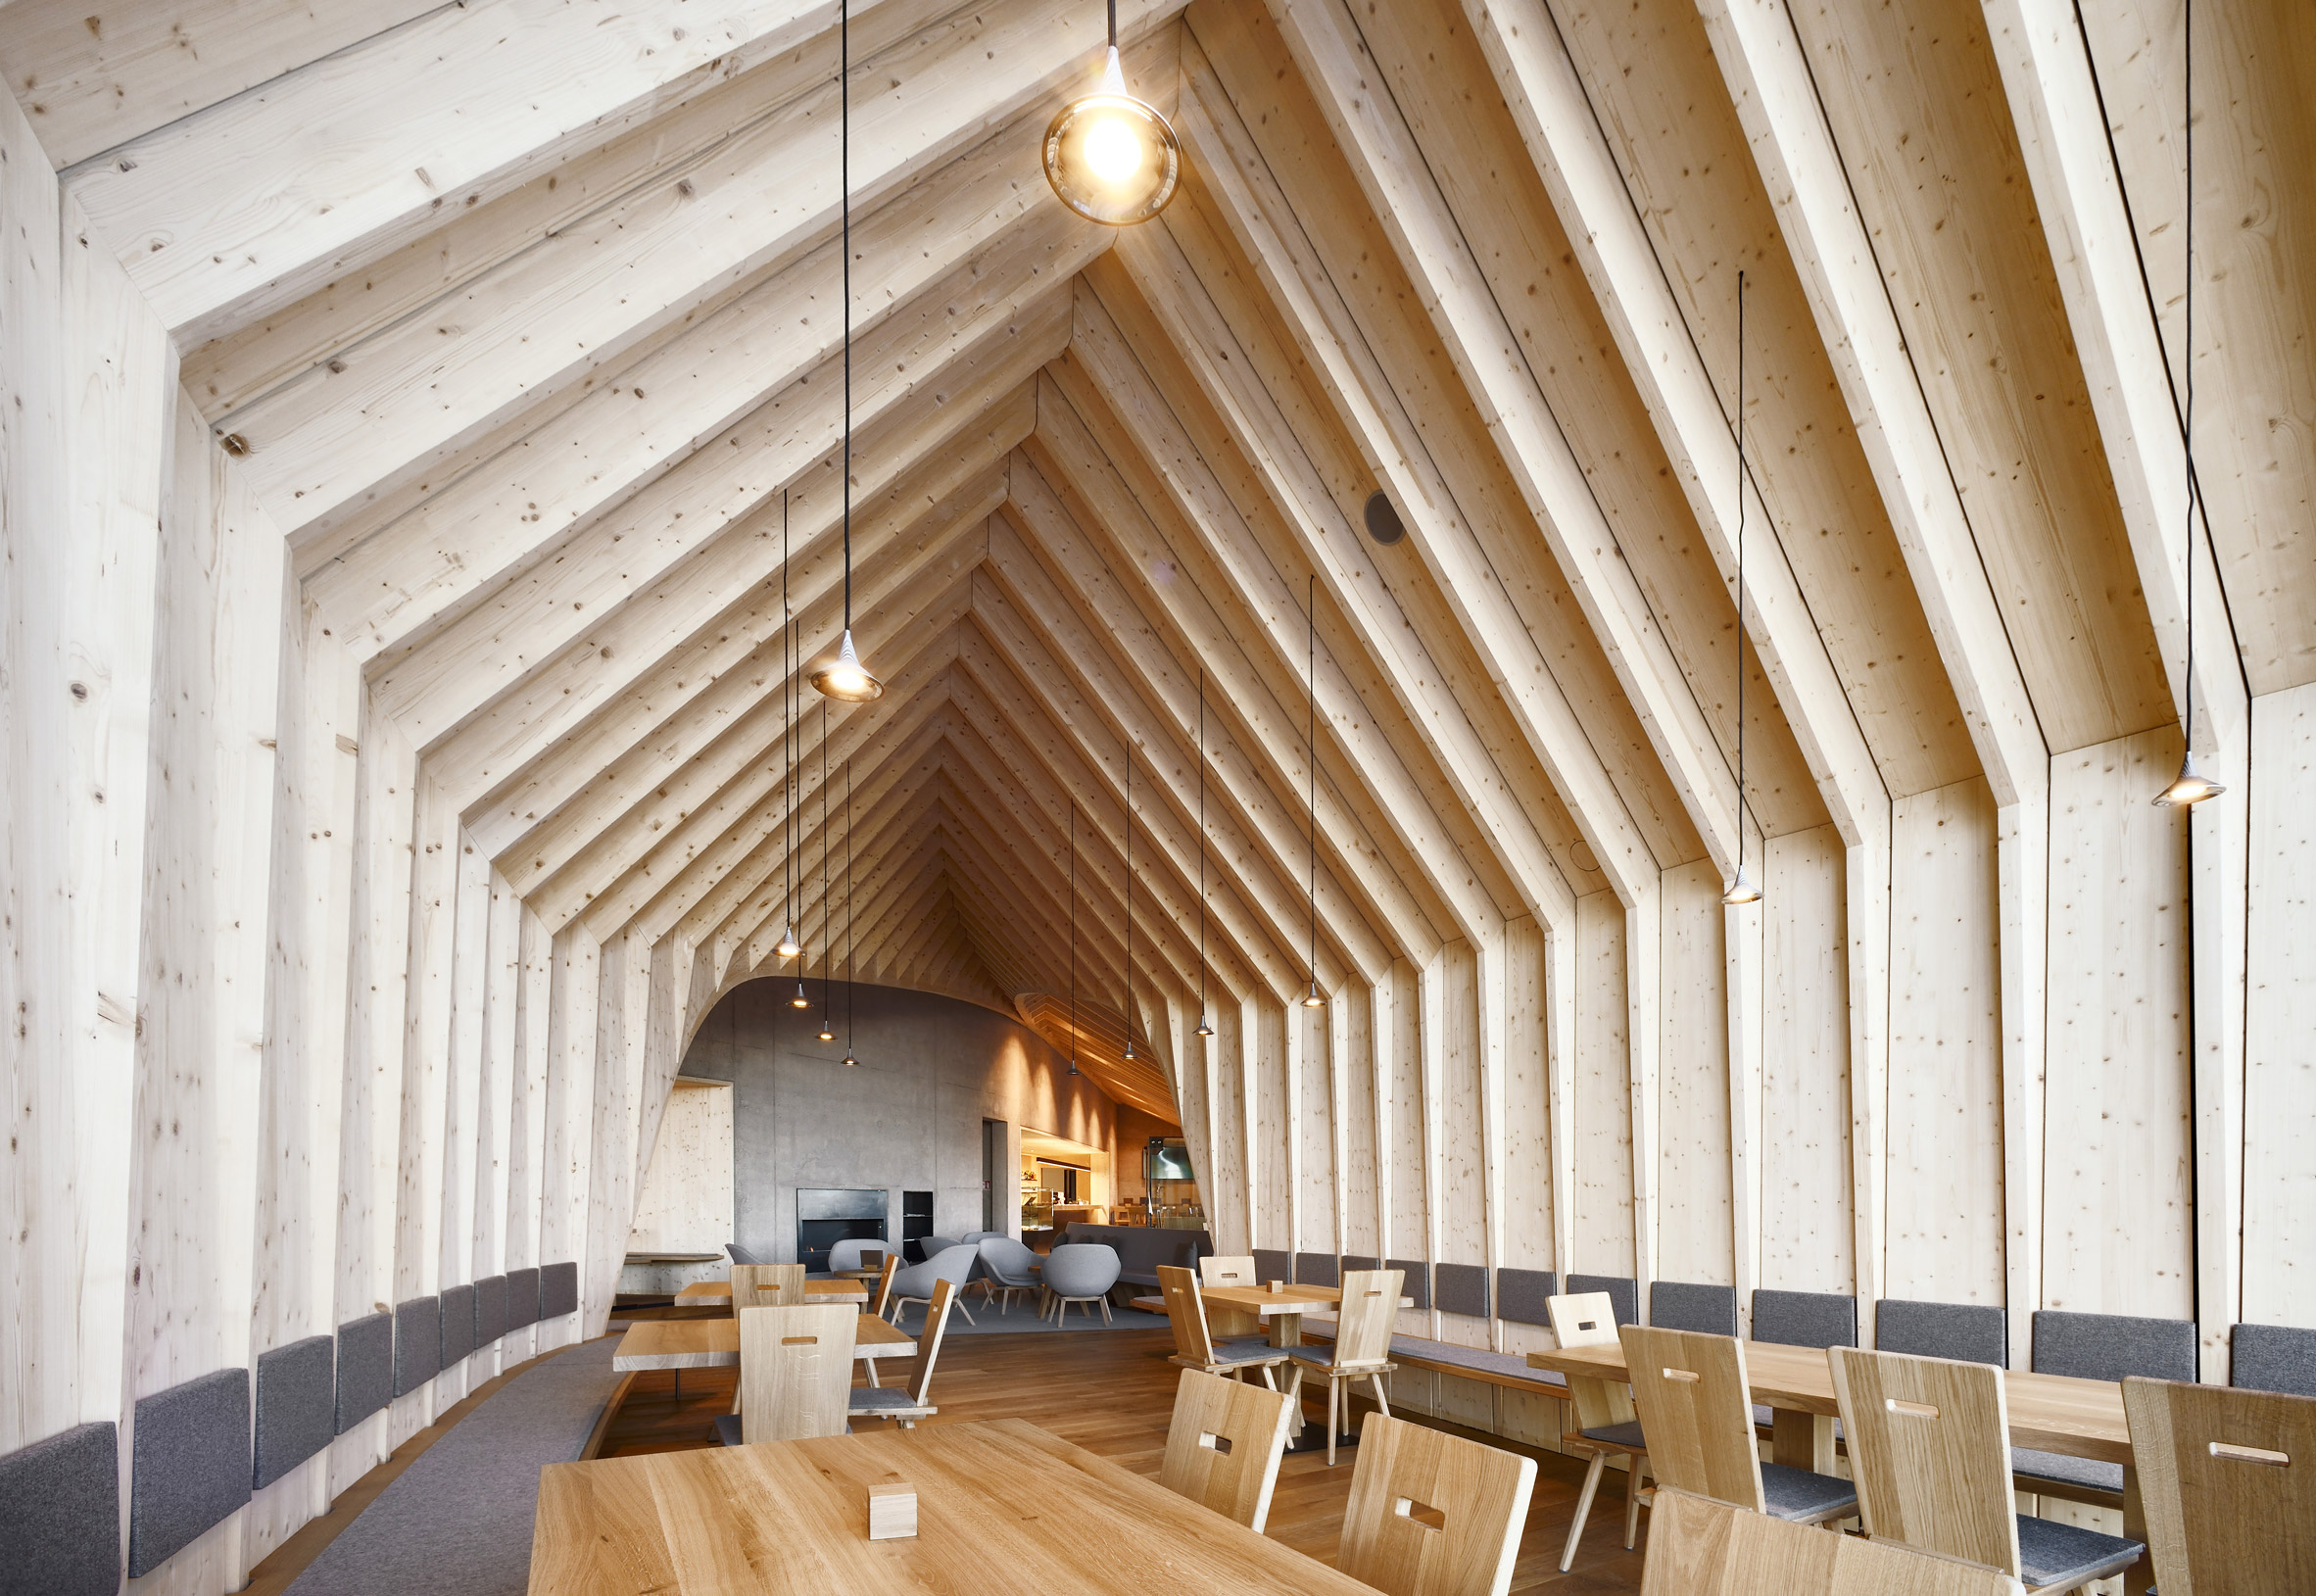 swiss, mountain, restaurant, three huts, oberholz, ski resort, peter pilcher, Pavol Mikolajcak, architects, structure, spruce, traditional, textures, construction, concrete, wood, view, scenery